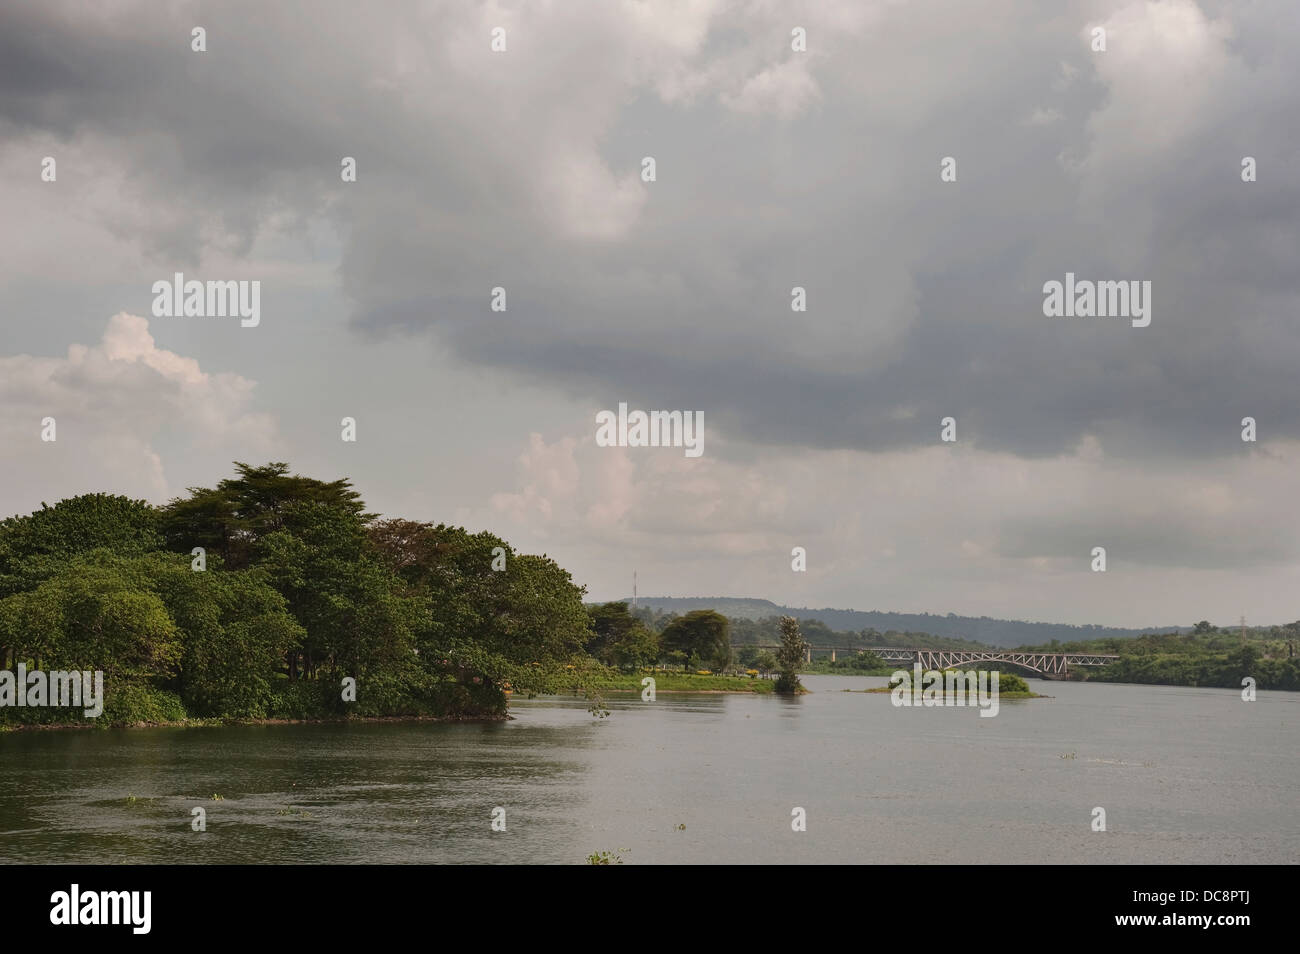 Uganda, 2011. Jinja. The river is considered to be the source of the Nile. - Stock Image